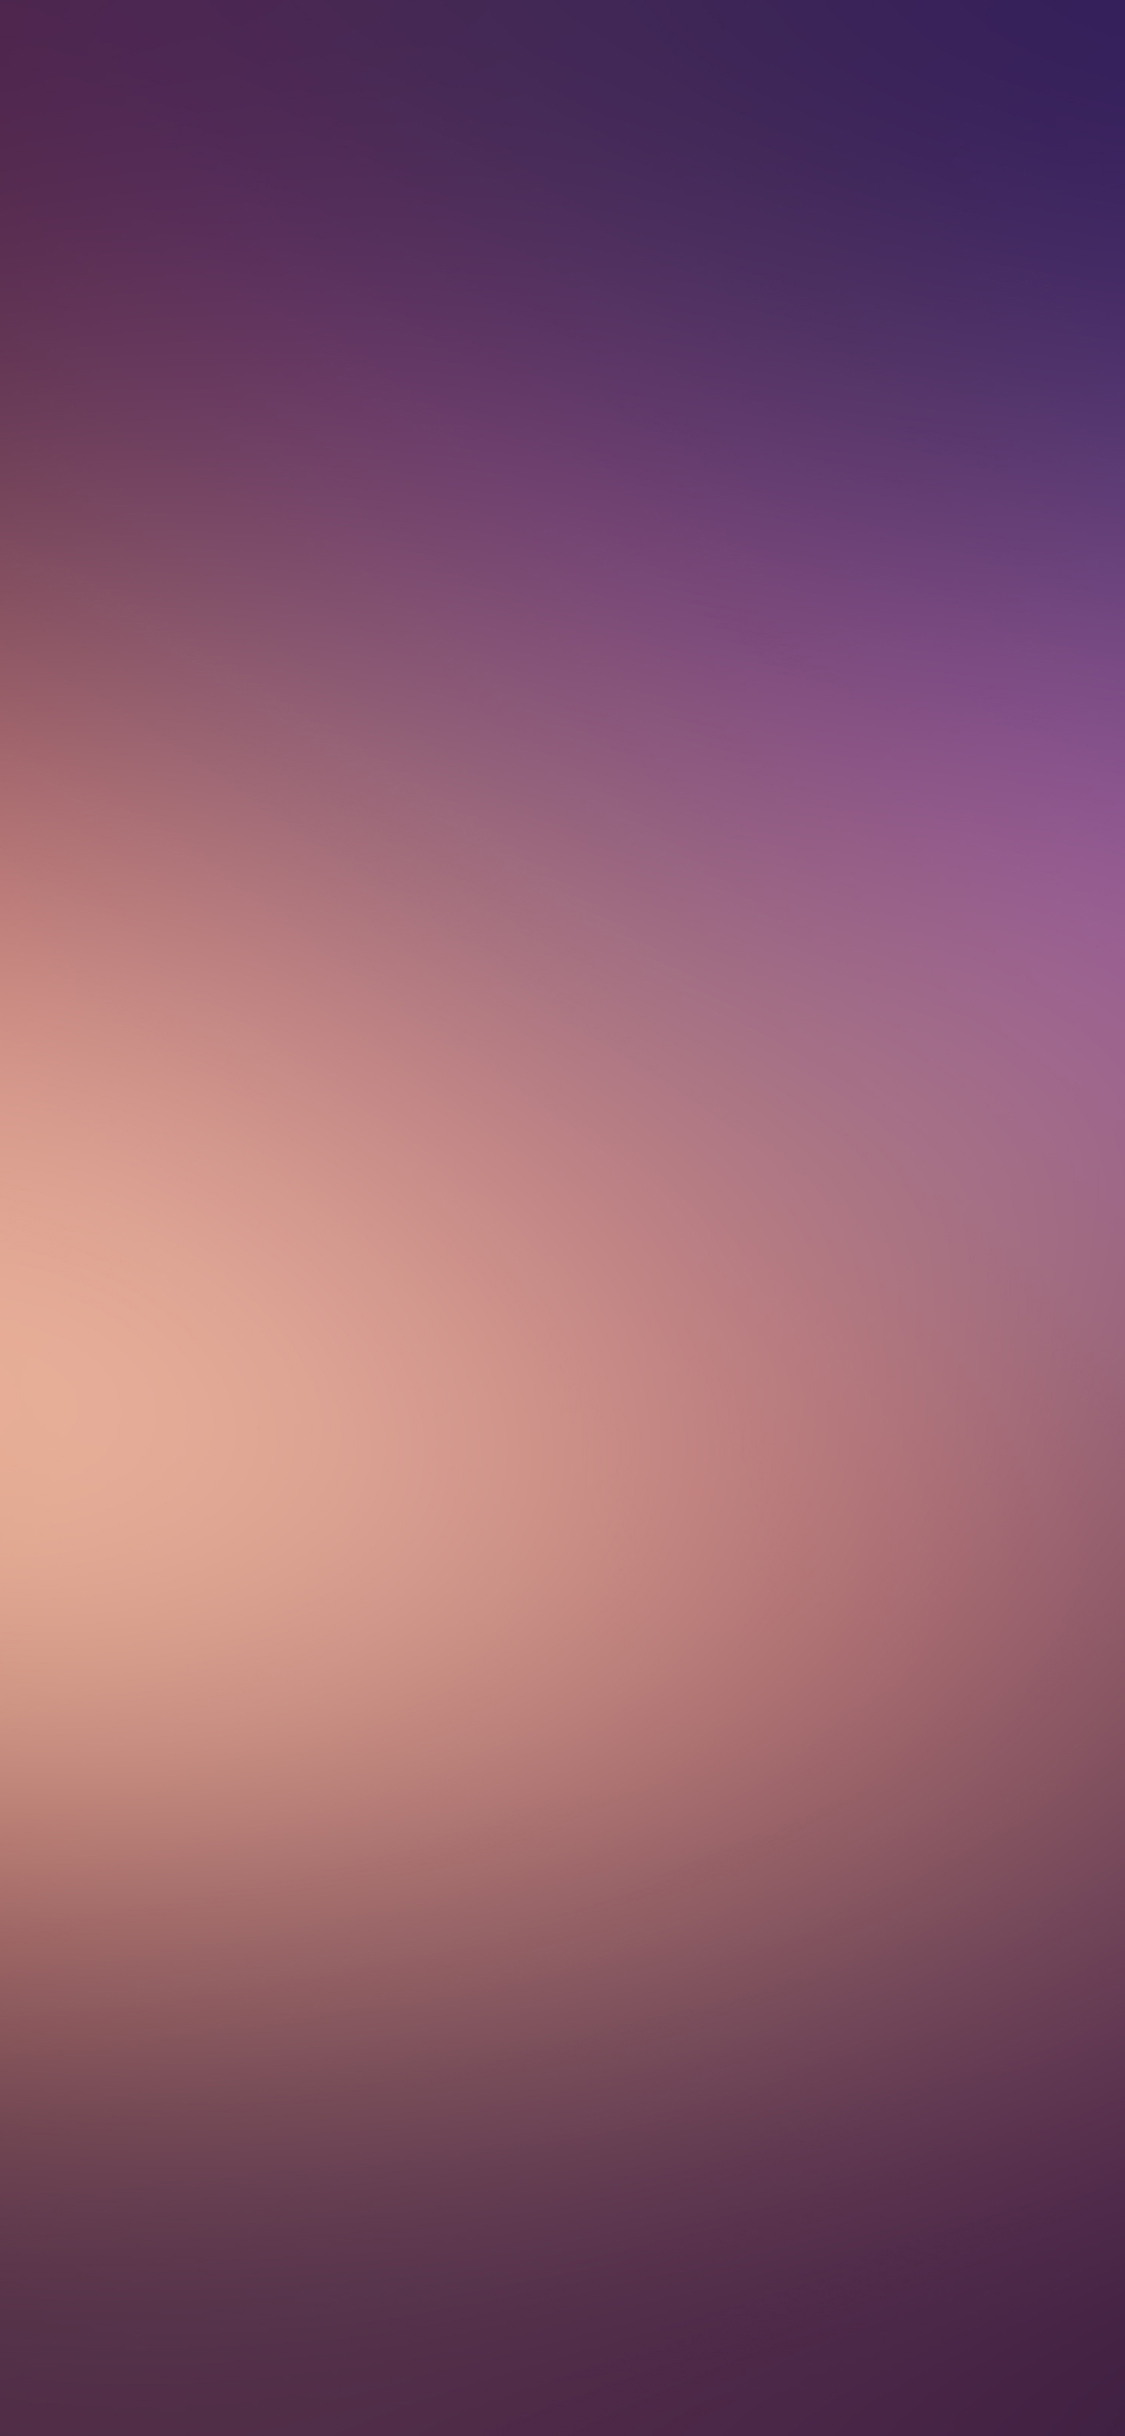 iPhoneXpapers.com-Apple-iPhone-wallpaper-sb54-wallpaper-beauty-pond-purple-night-blur